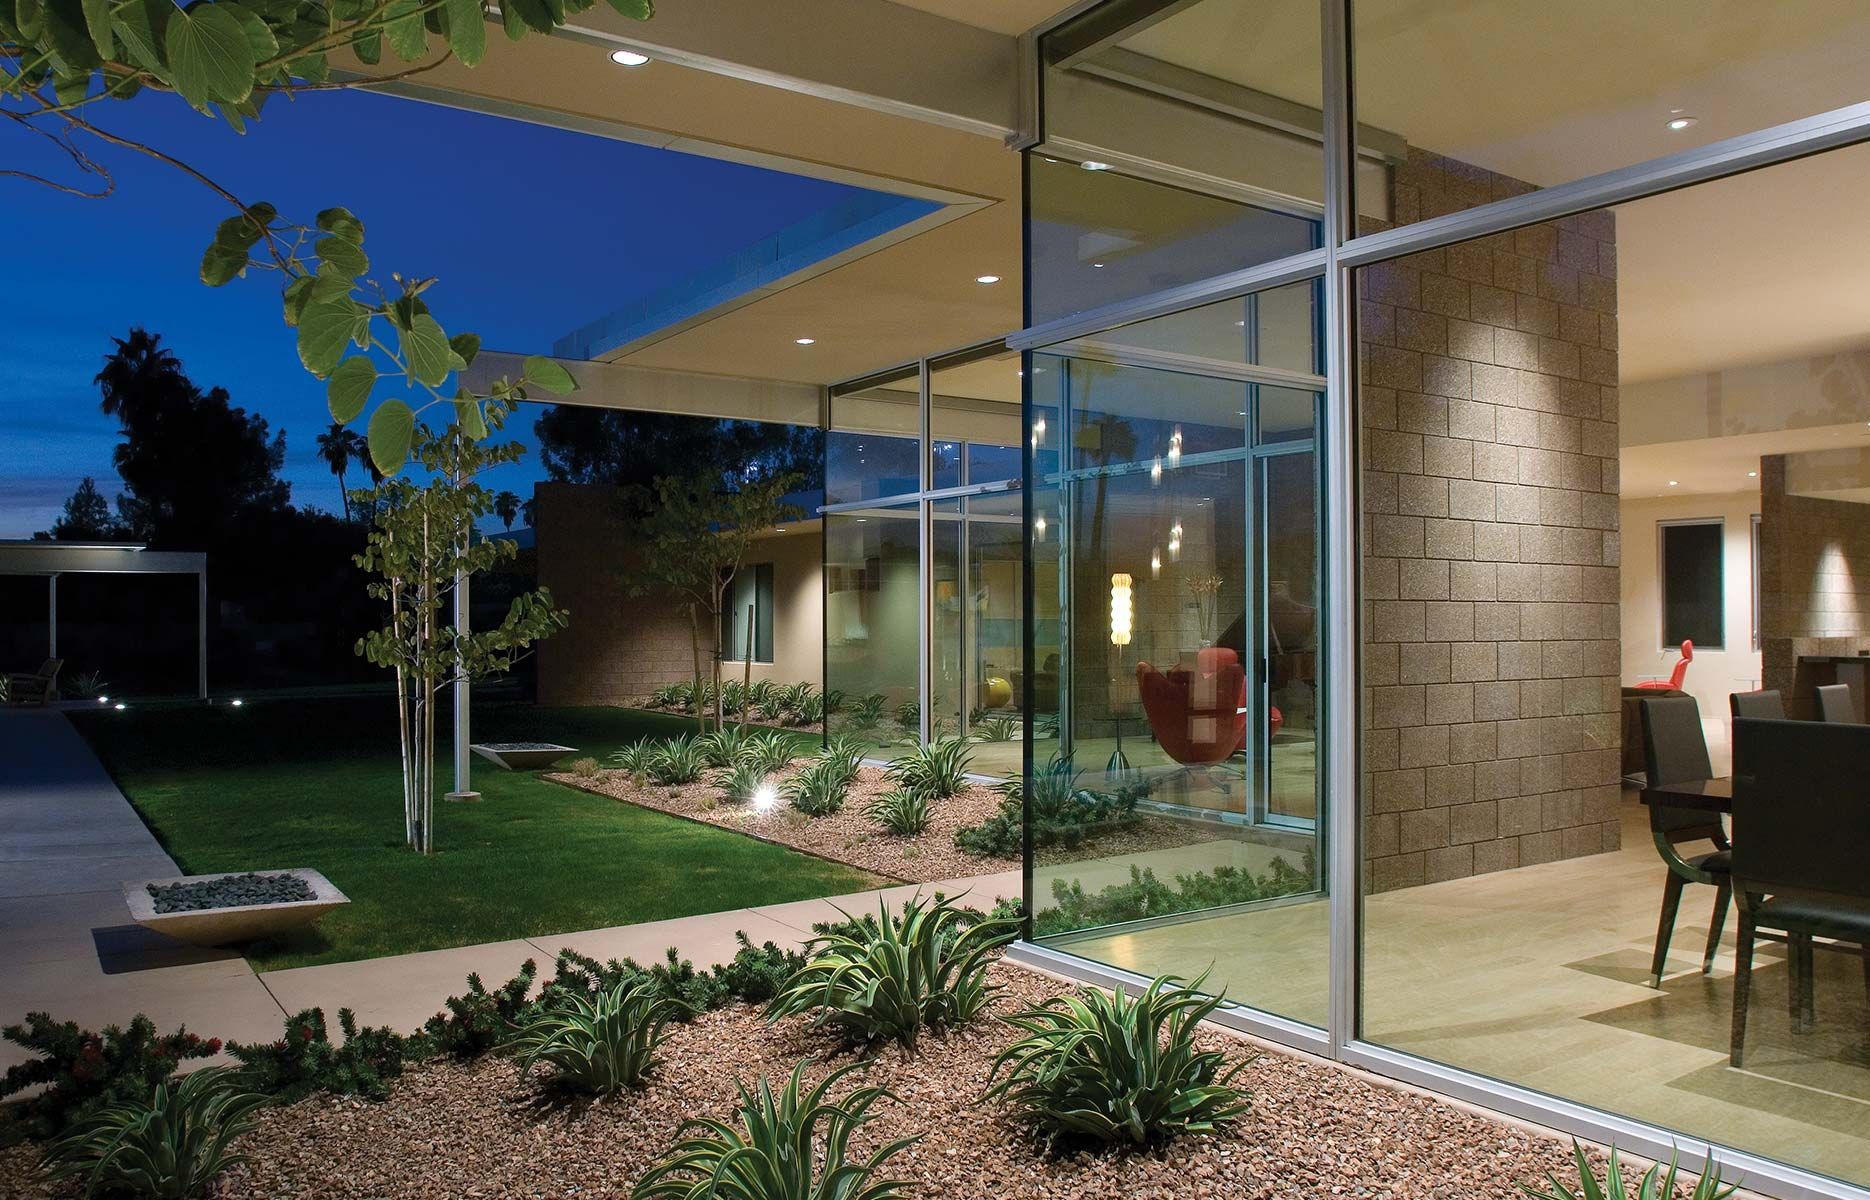 How to Comply with Energy Codes Without Compromising Your ... on New Vision Outdoor Living id=59248